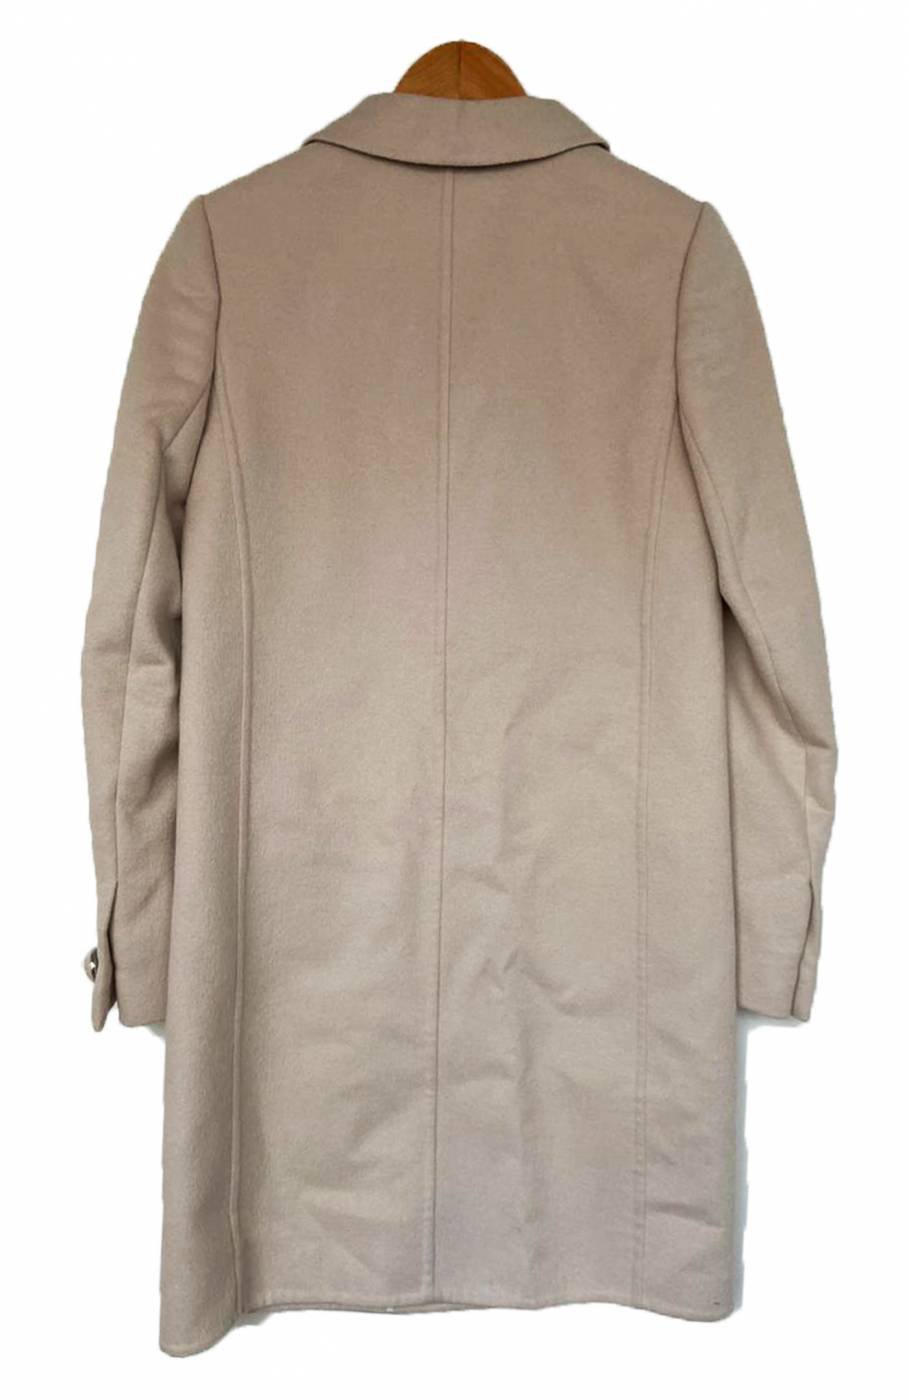 MANTEAU PRADA OFF WHITE LÃ TAM P